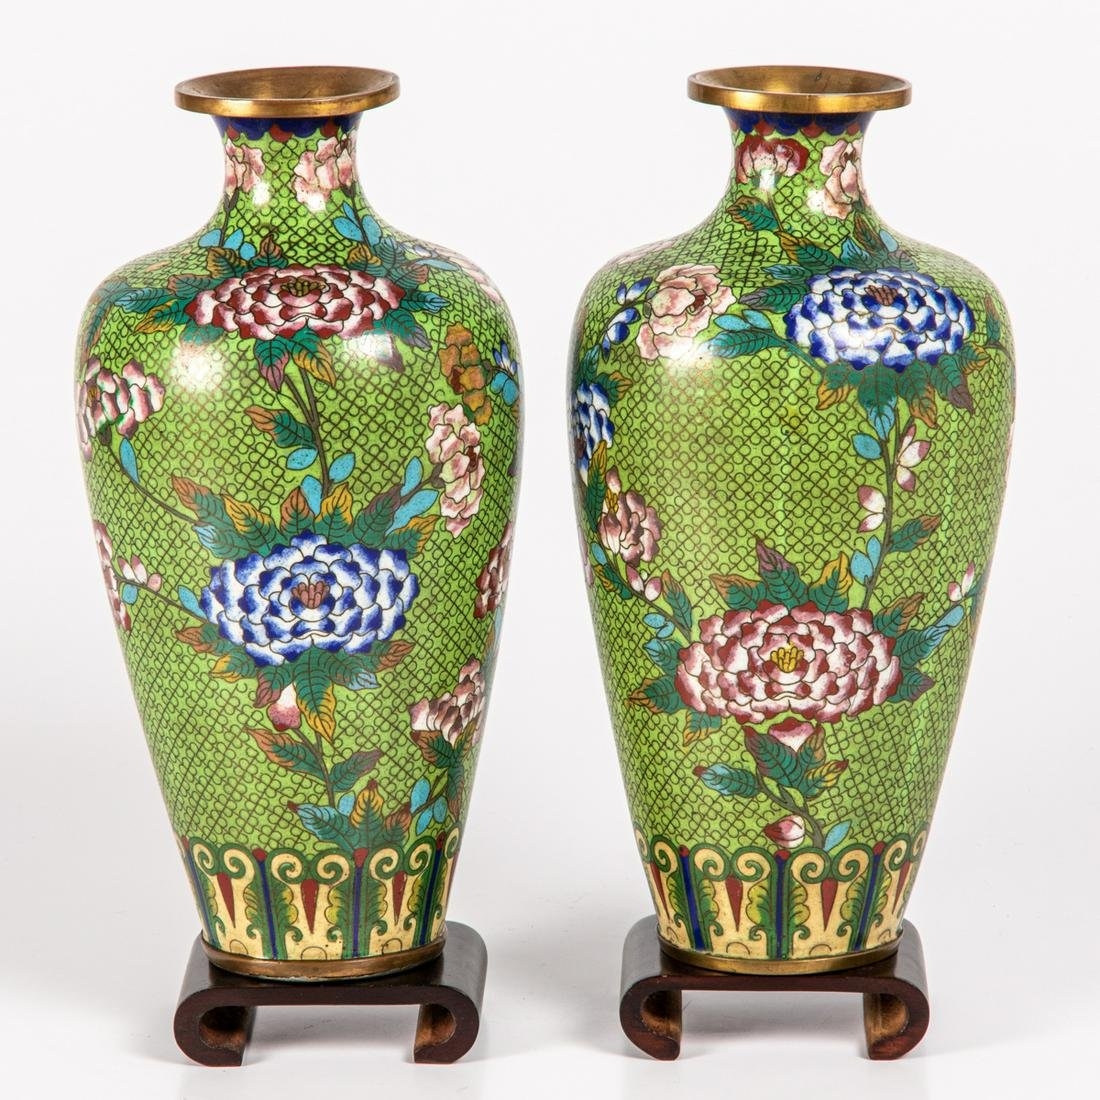 A Pair of Chinese Cloisonné Vases,